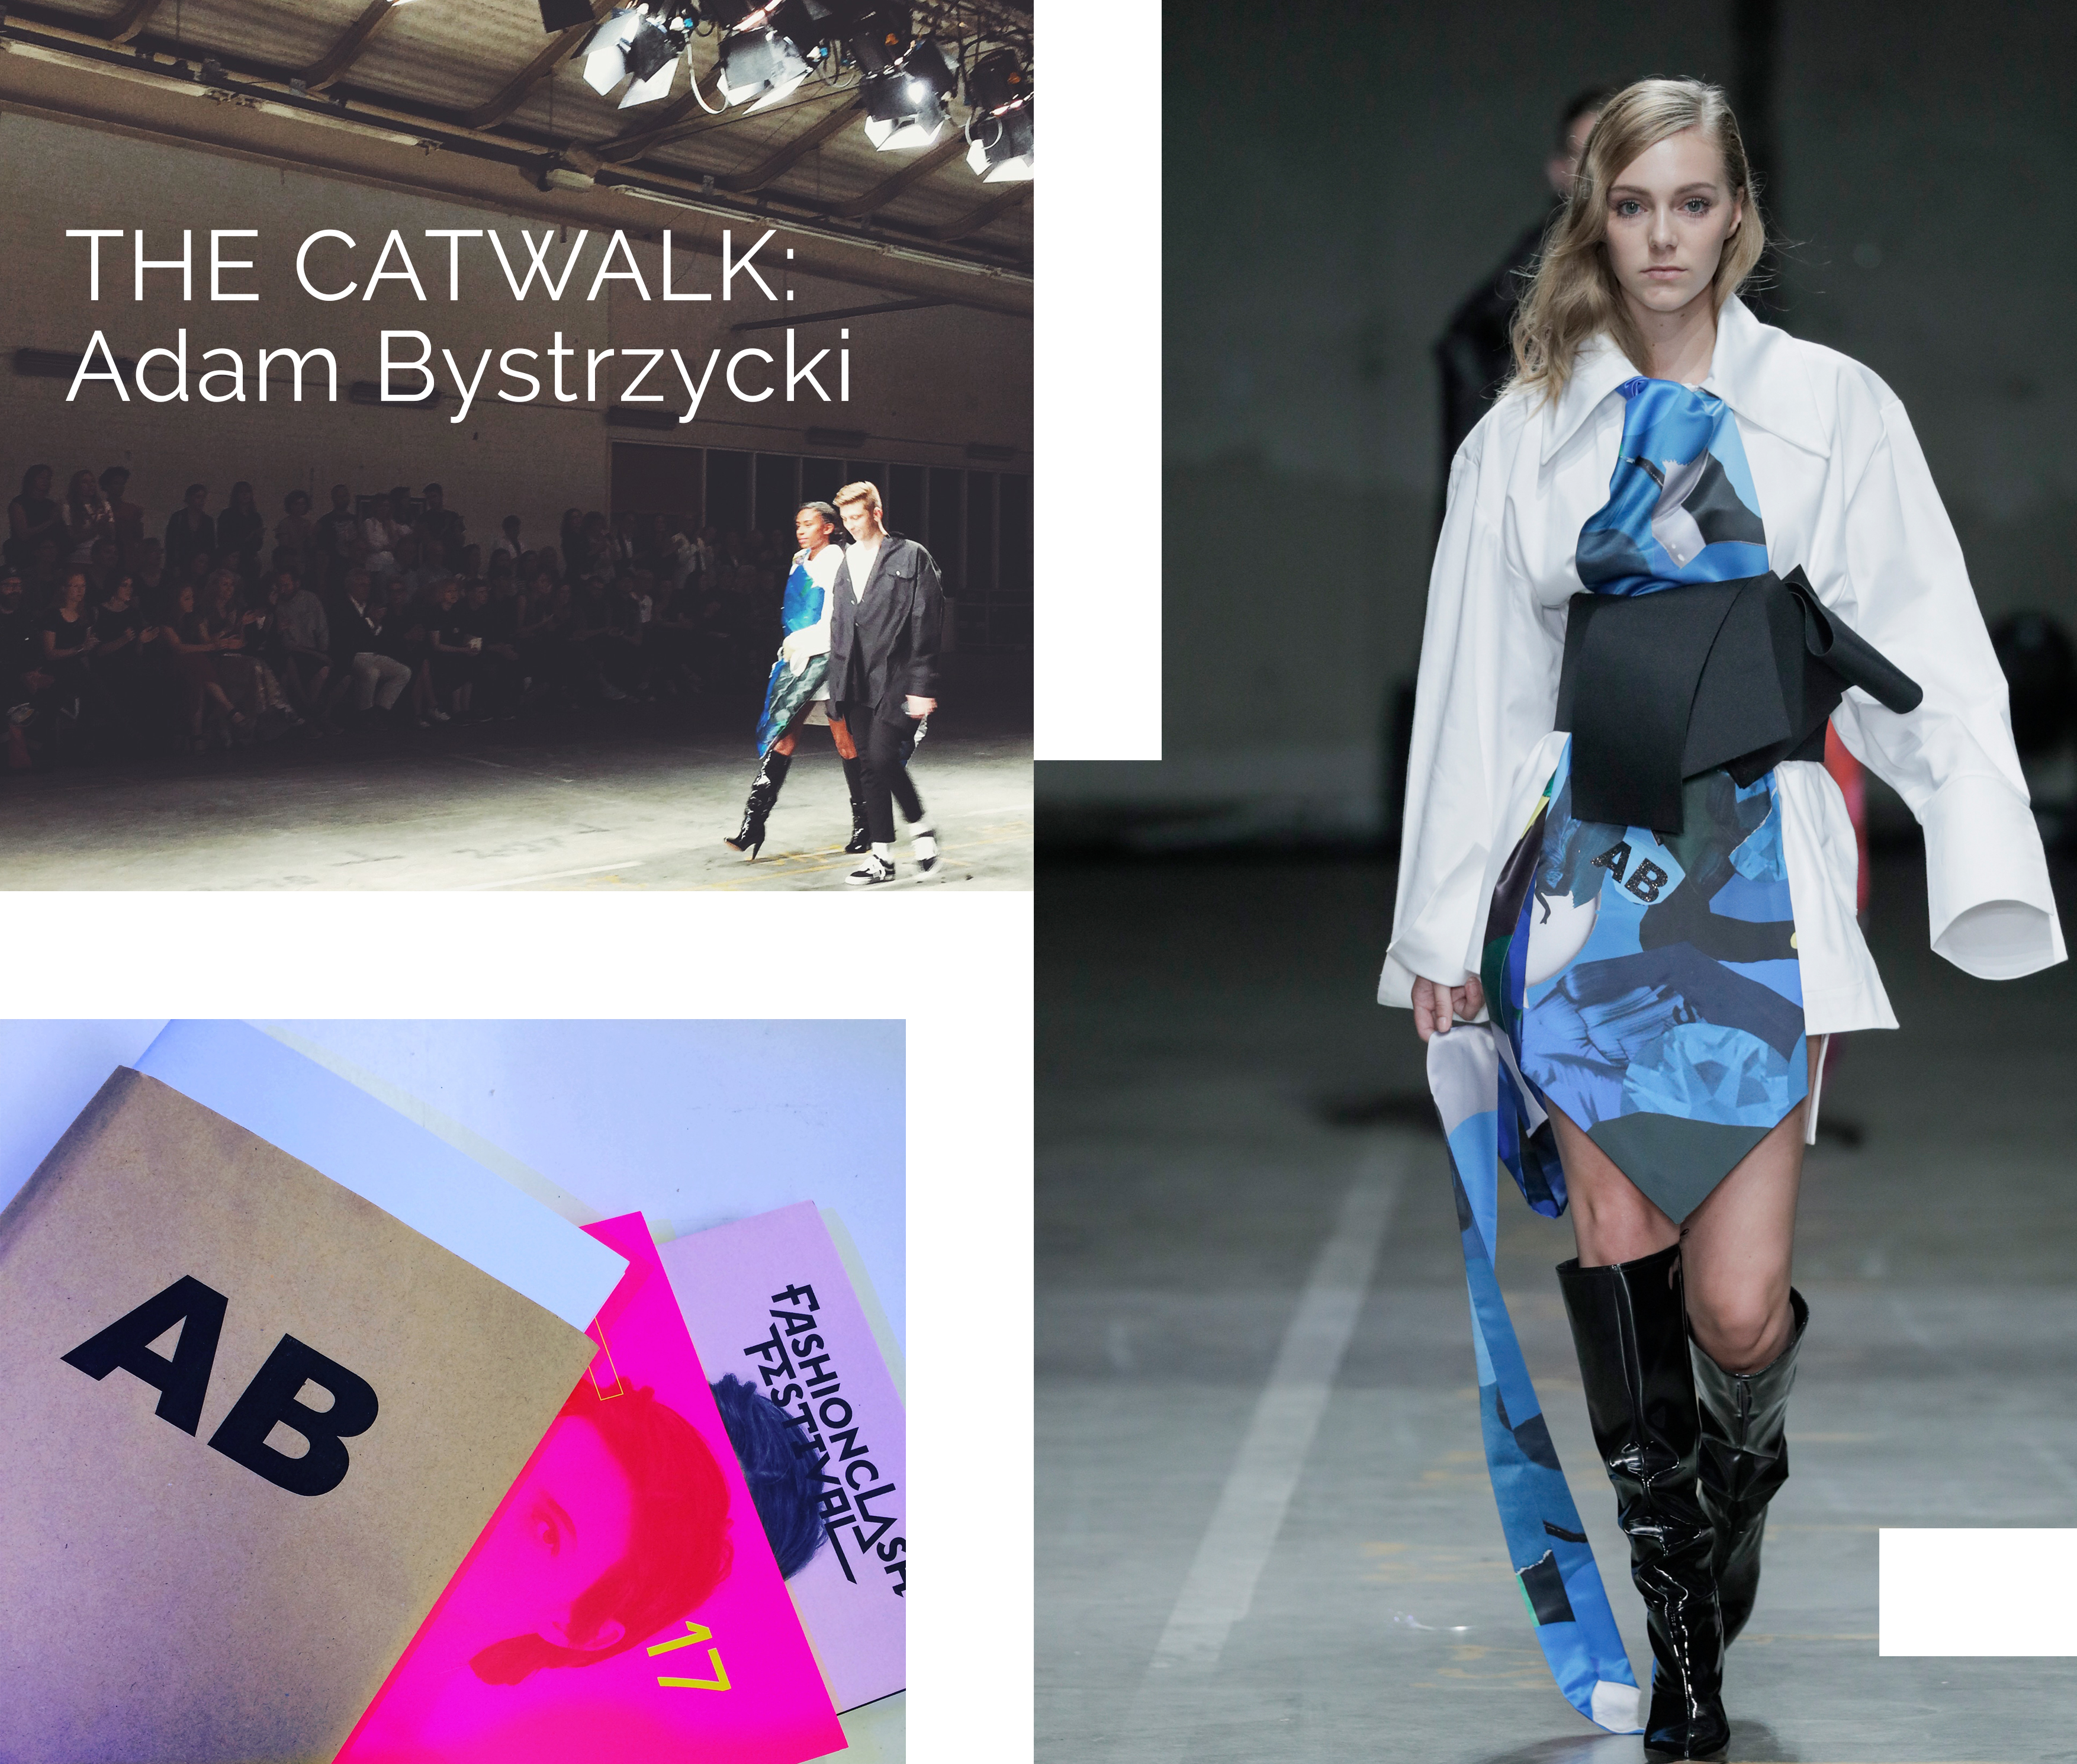 fashionclash, Maastricht, Adam Bystrzycki, catwalk, fashion, travel